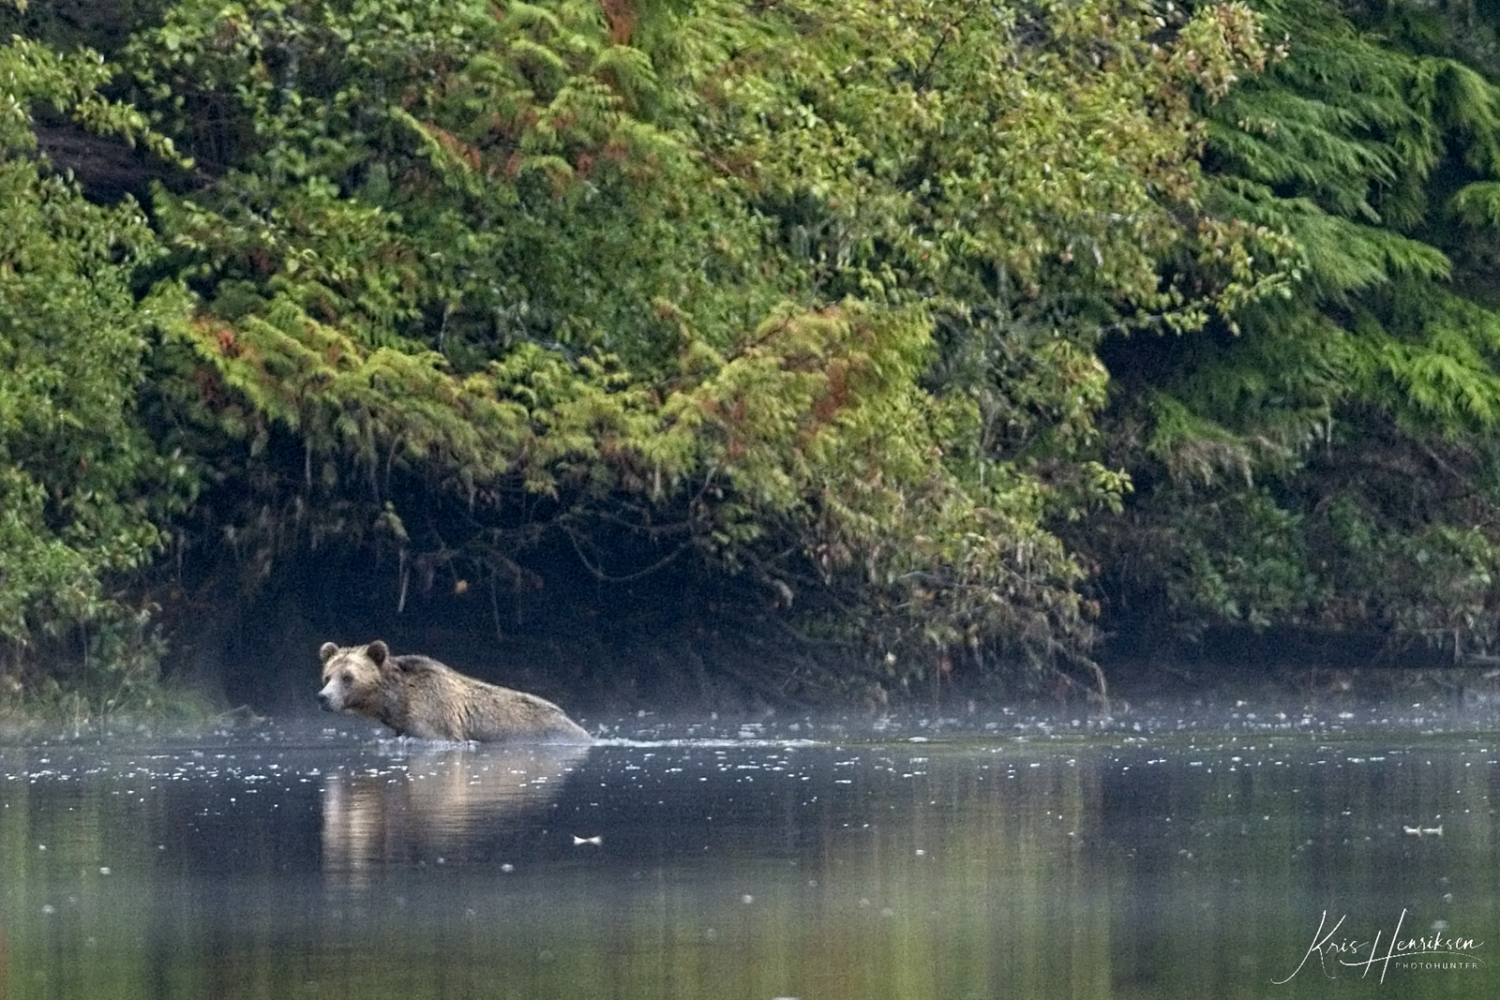 Grizzly i vandet, Knight Inlet